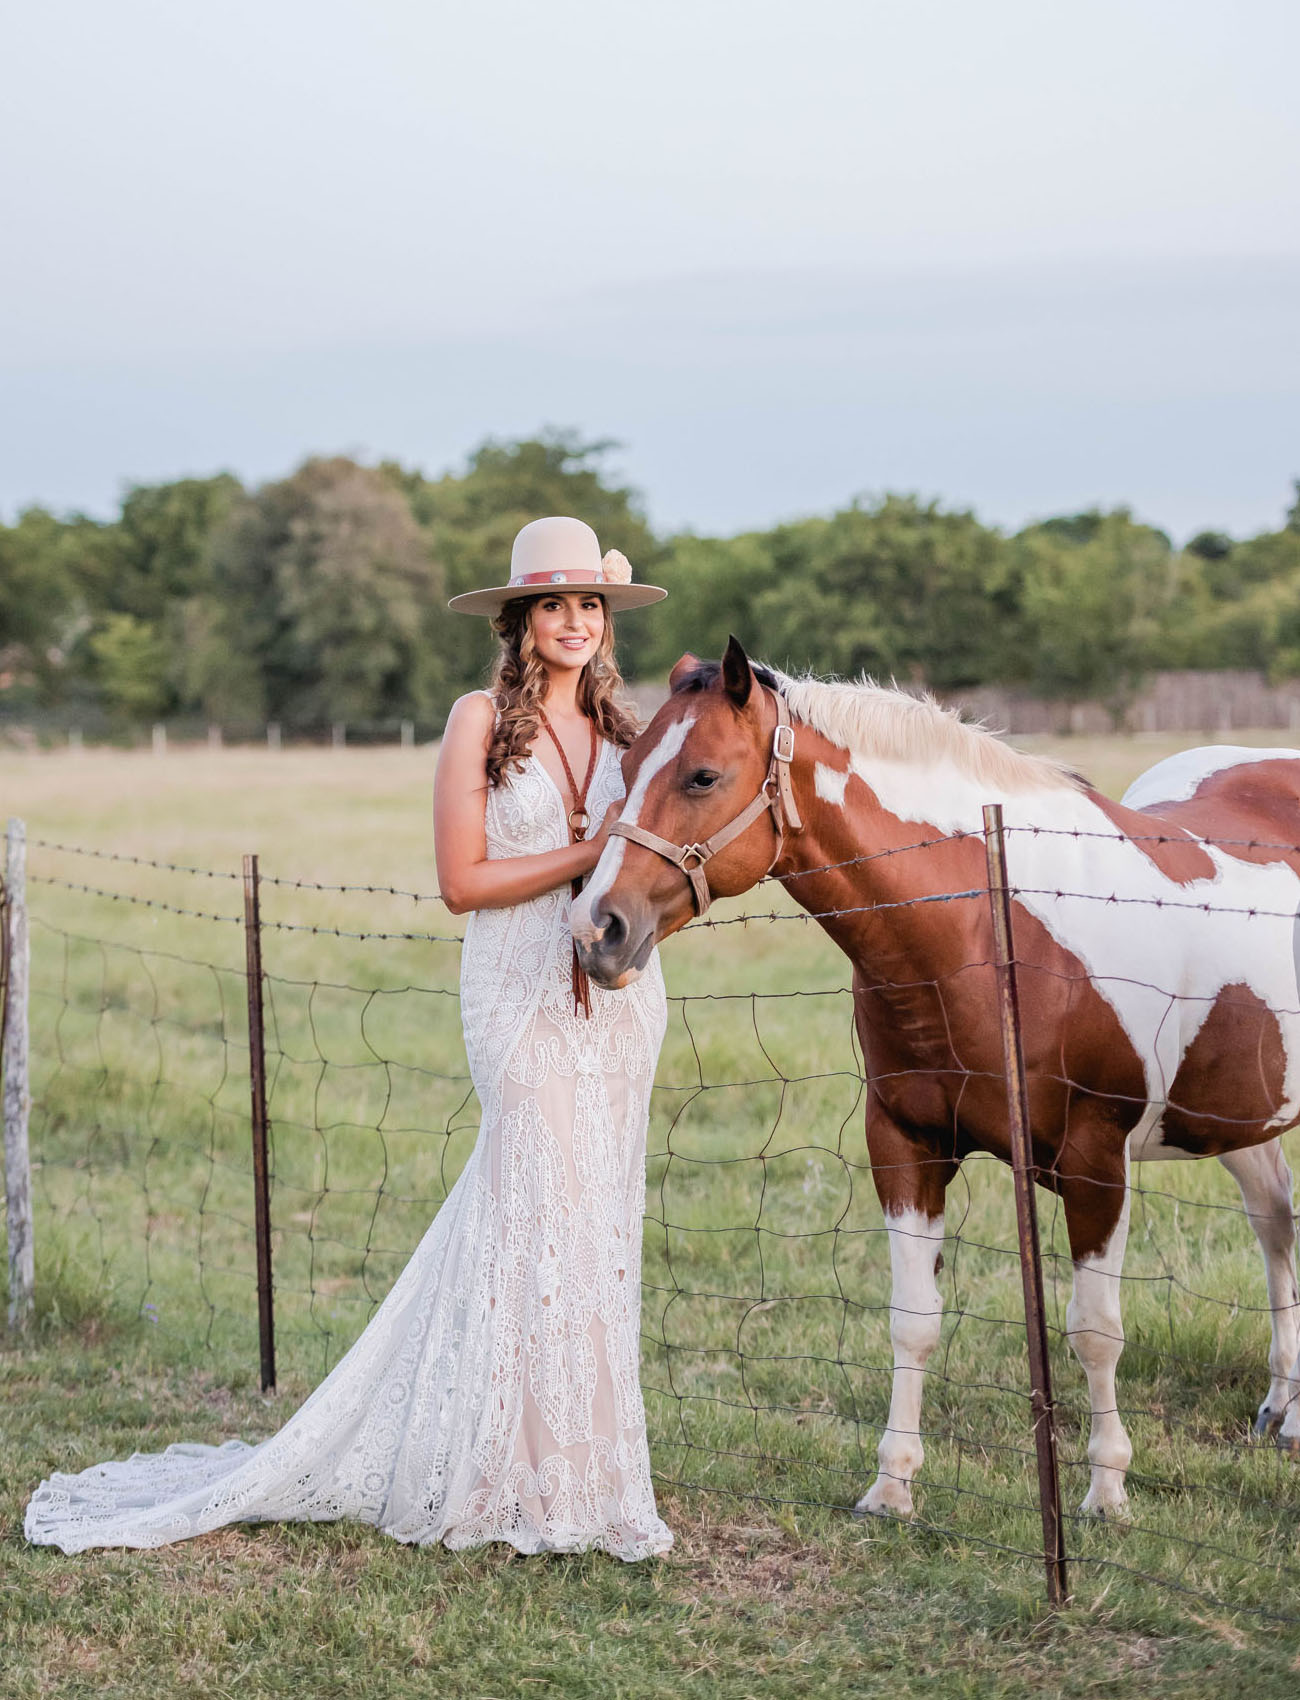 Texas Summer Solstice Wedding Inspiration